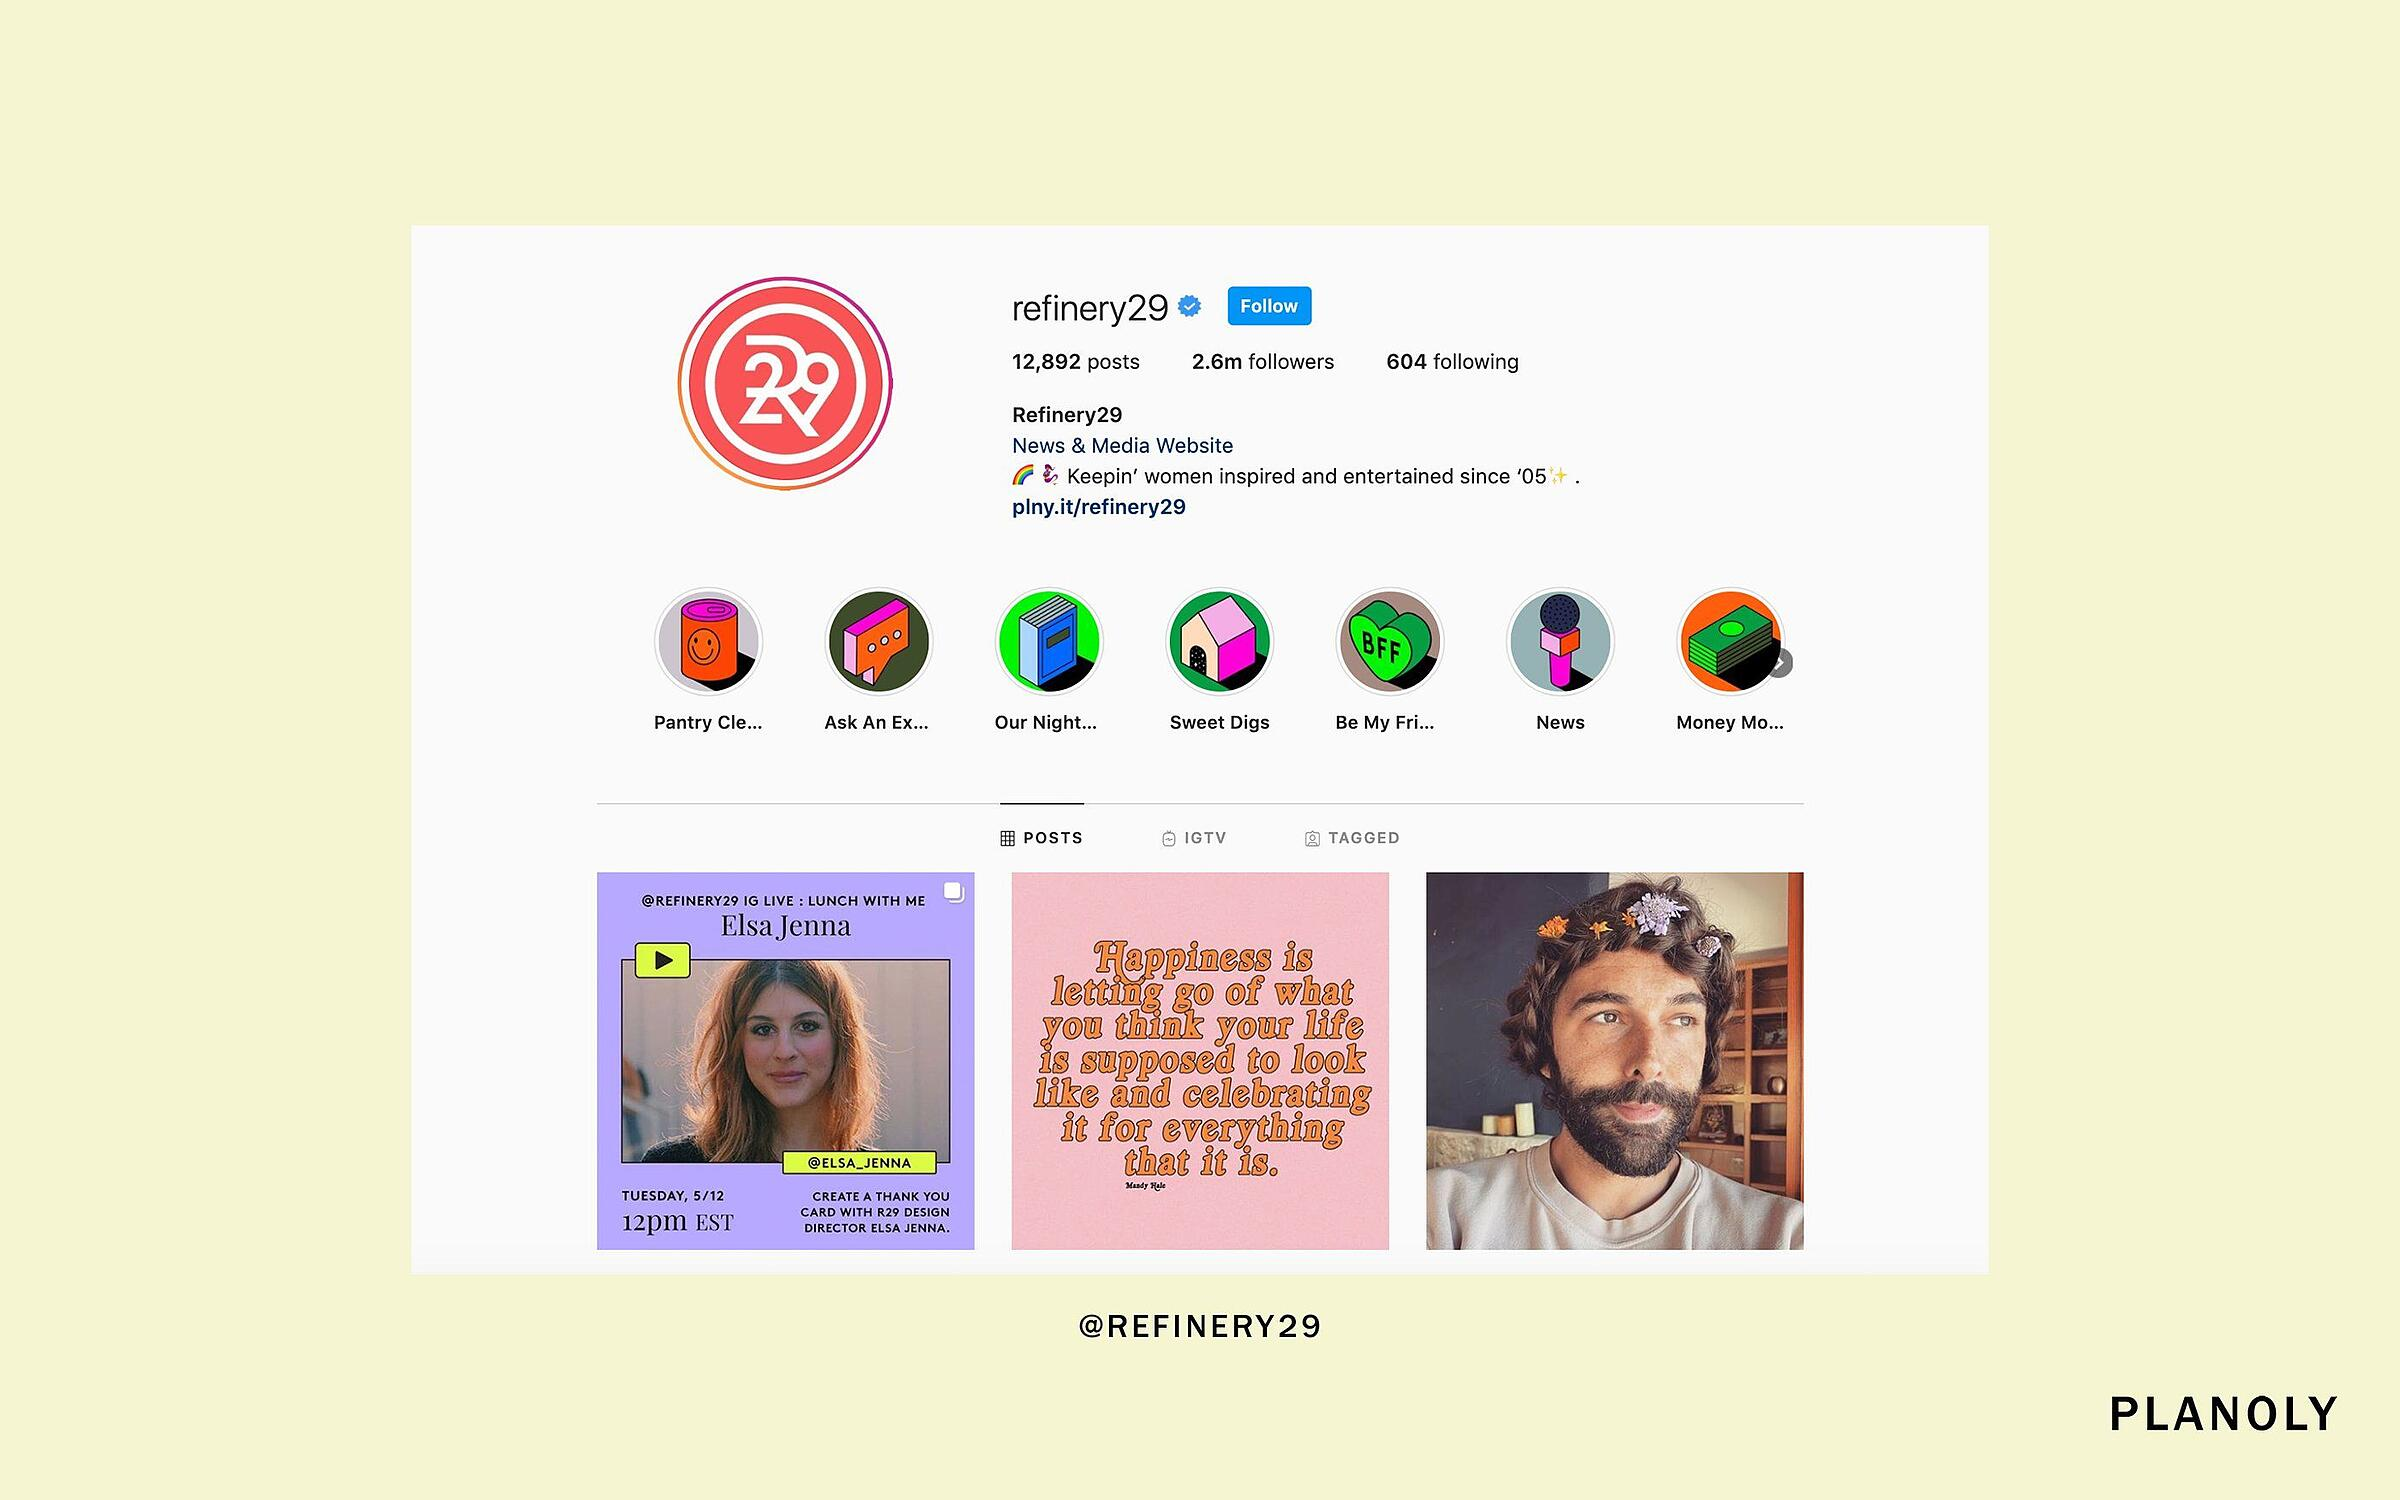 PLANOLY - Blog Post - How to Create Instagram Stories Highlights That Serve Your Customers - Image 7